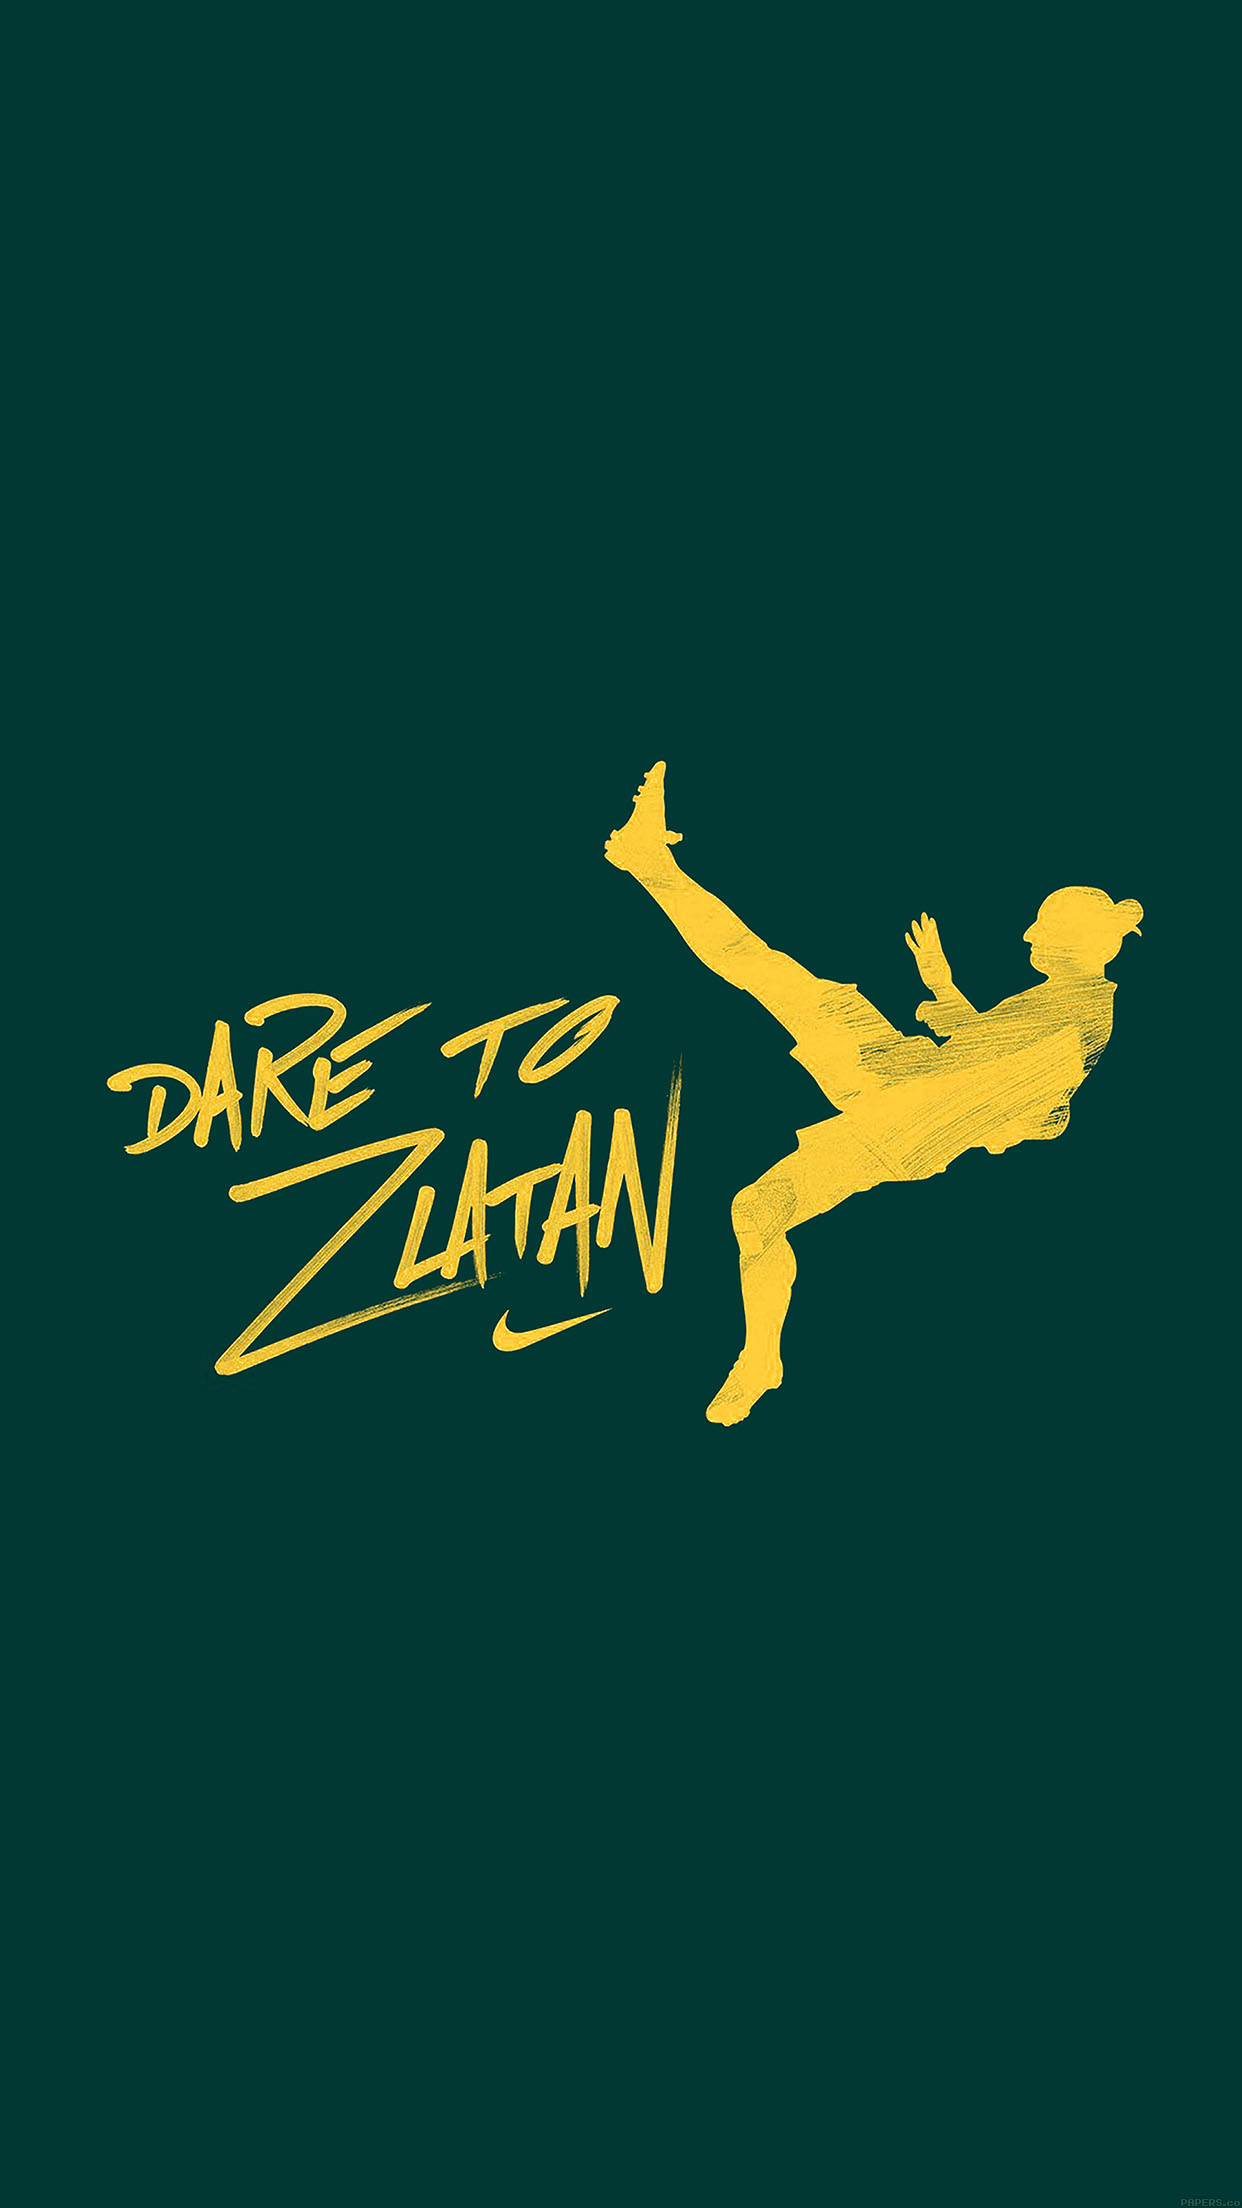 aa53-dare-to-zlatan-green-sports-art - Papers co